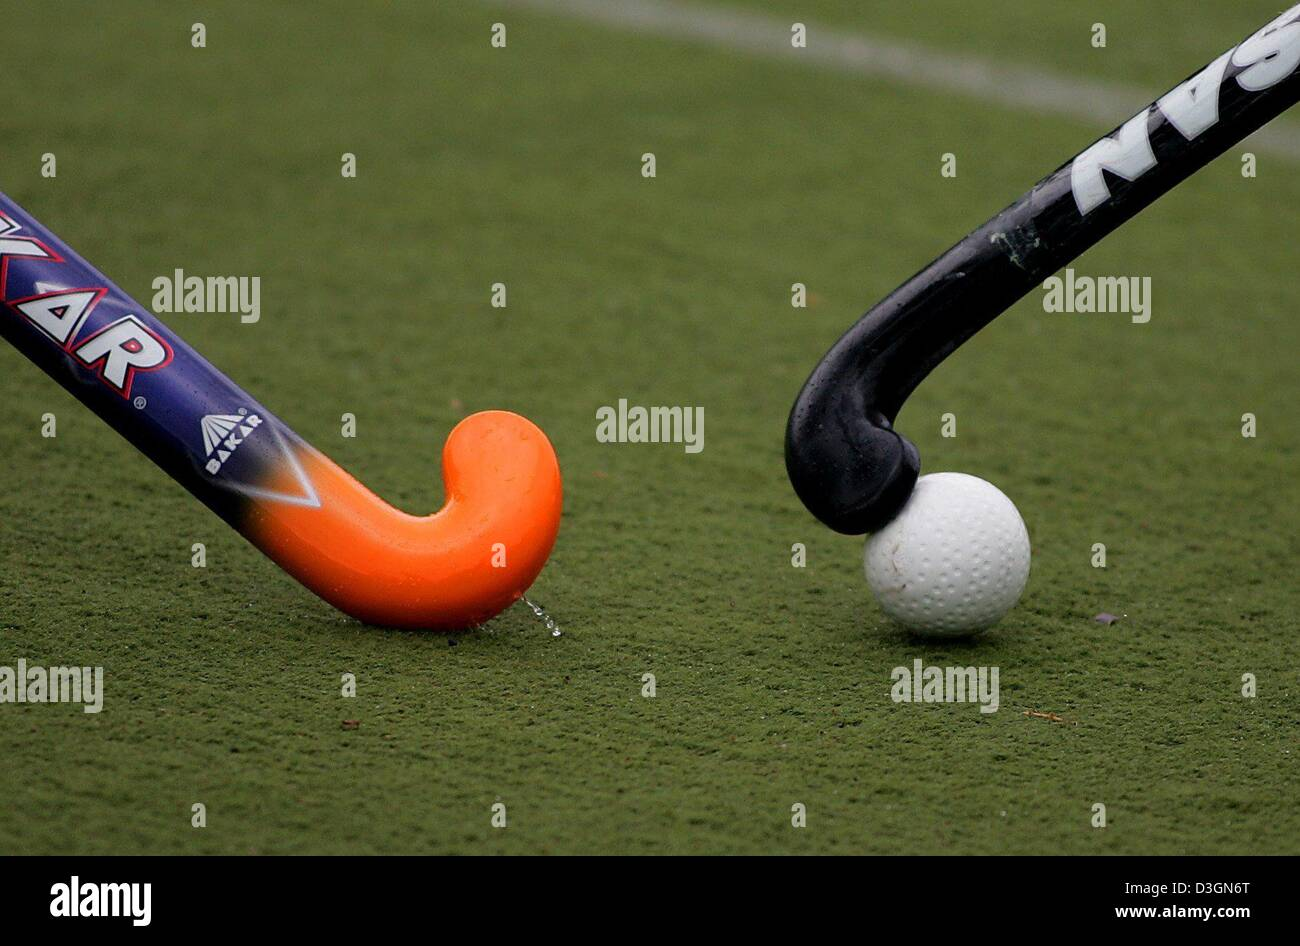 (dpa) Two sticks fight for the ball during a field hockey ...